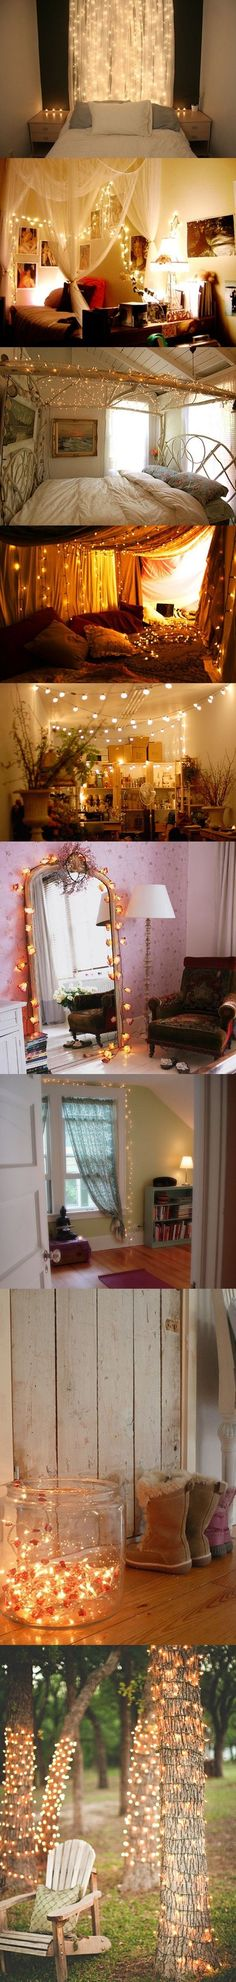 #marketingcontenidos #home #ideas #decoracion #homeideas Christmas Lights Home Decorations Pictures, Photos, and Images for Facebook, Tumblr, Pinterest, and Twitterhttp://pinterest.com/pin/483292603737556287/